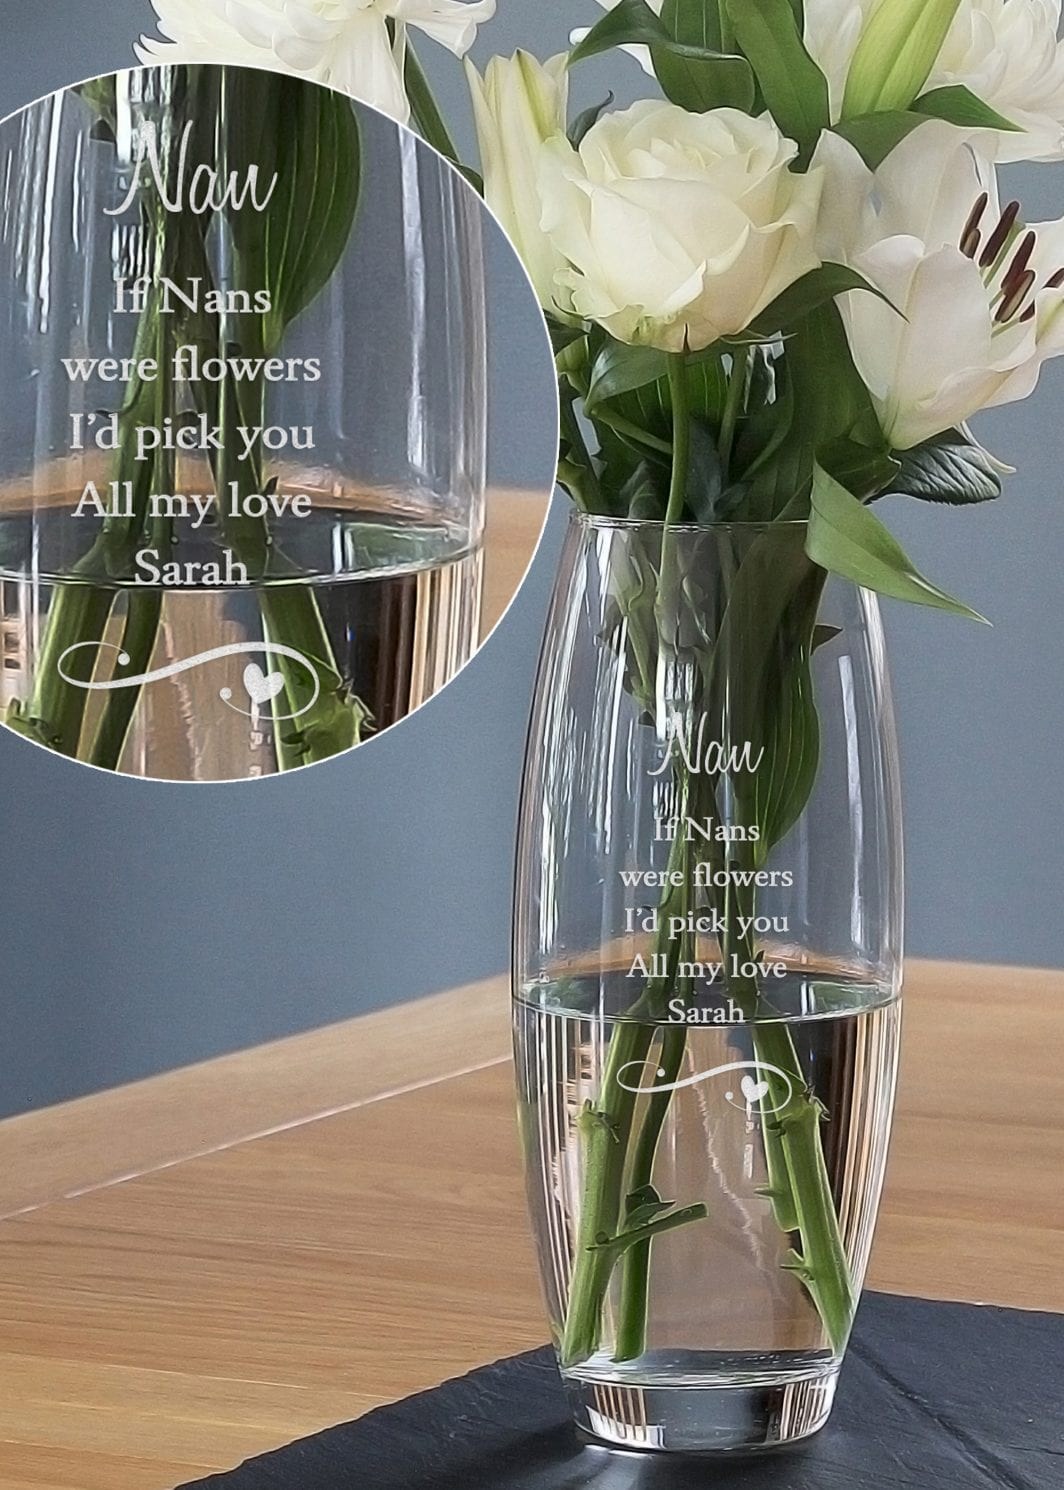 plushbarn personalised gifts glass vase